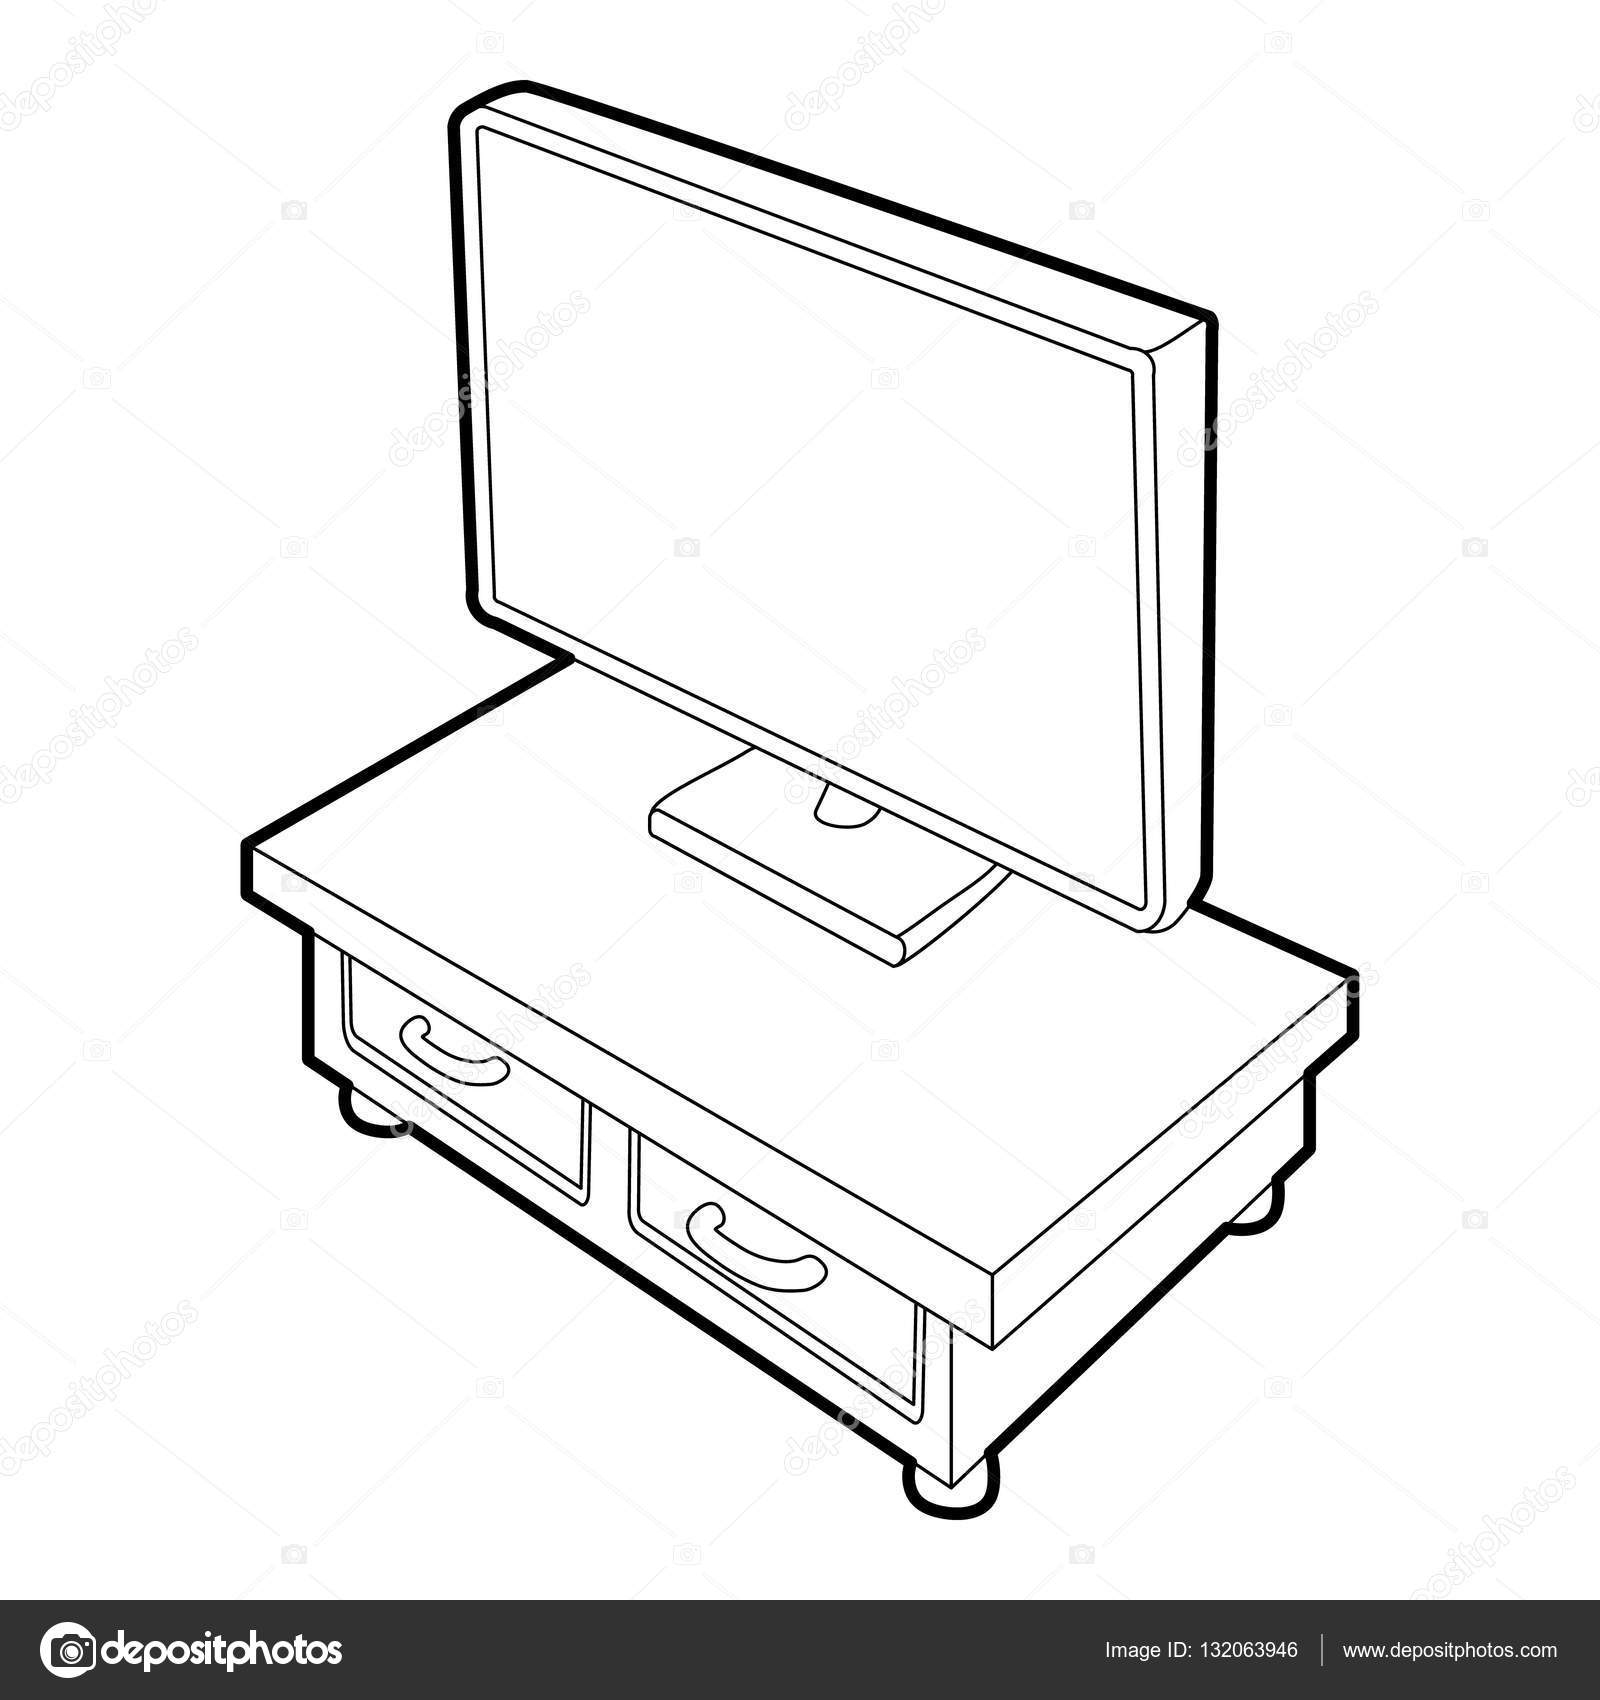 3d Isometric Drawing At Getdrawings